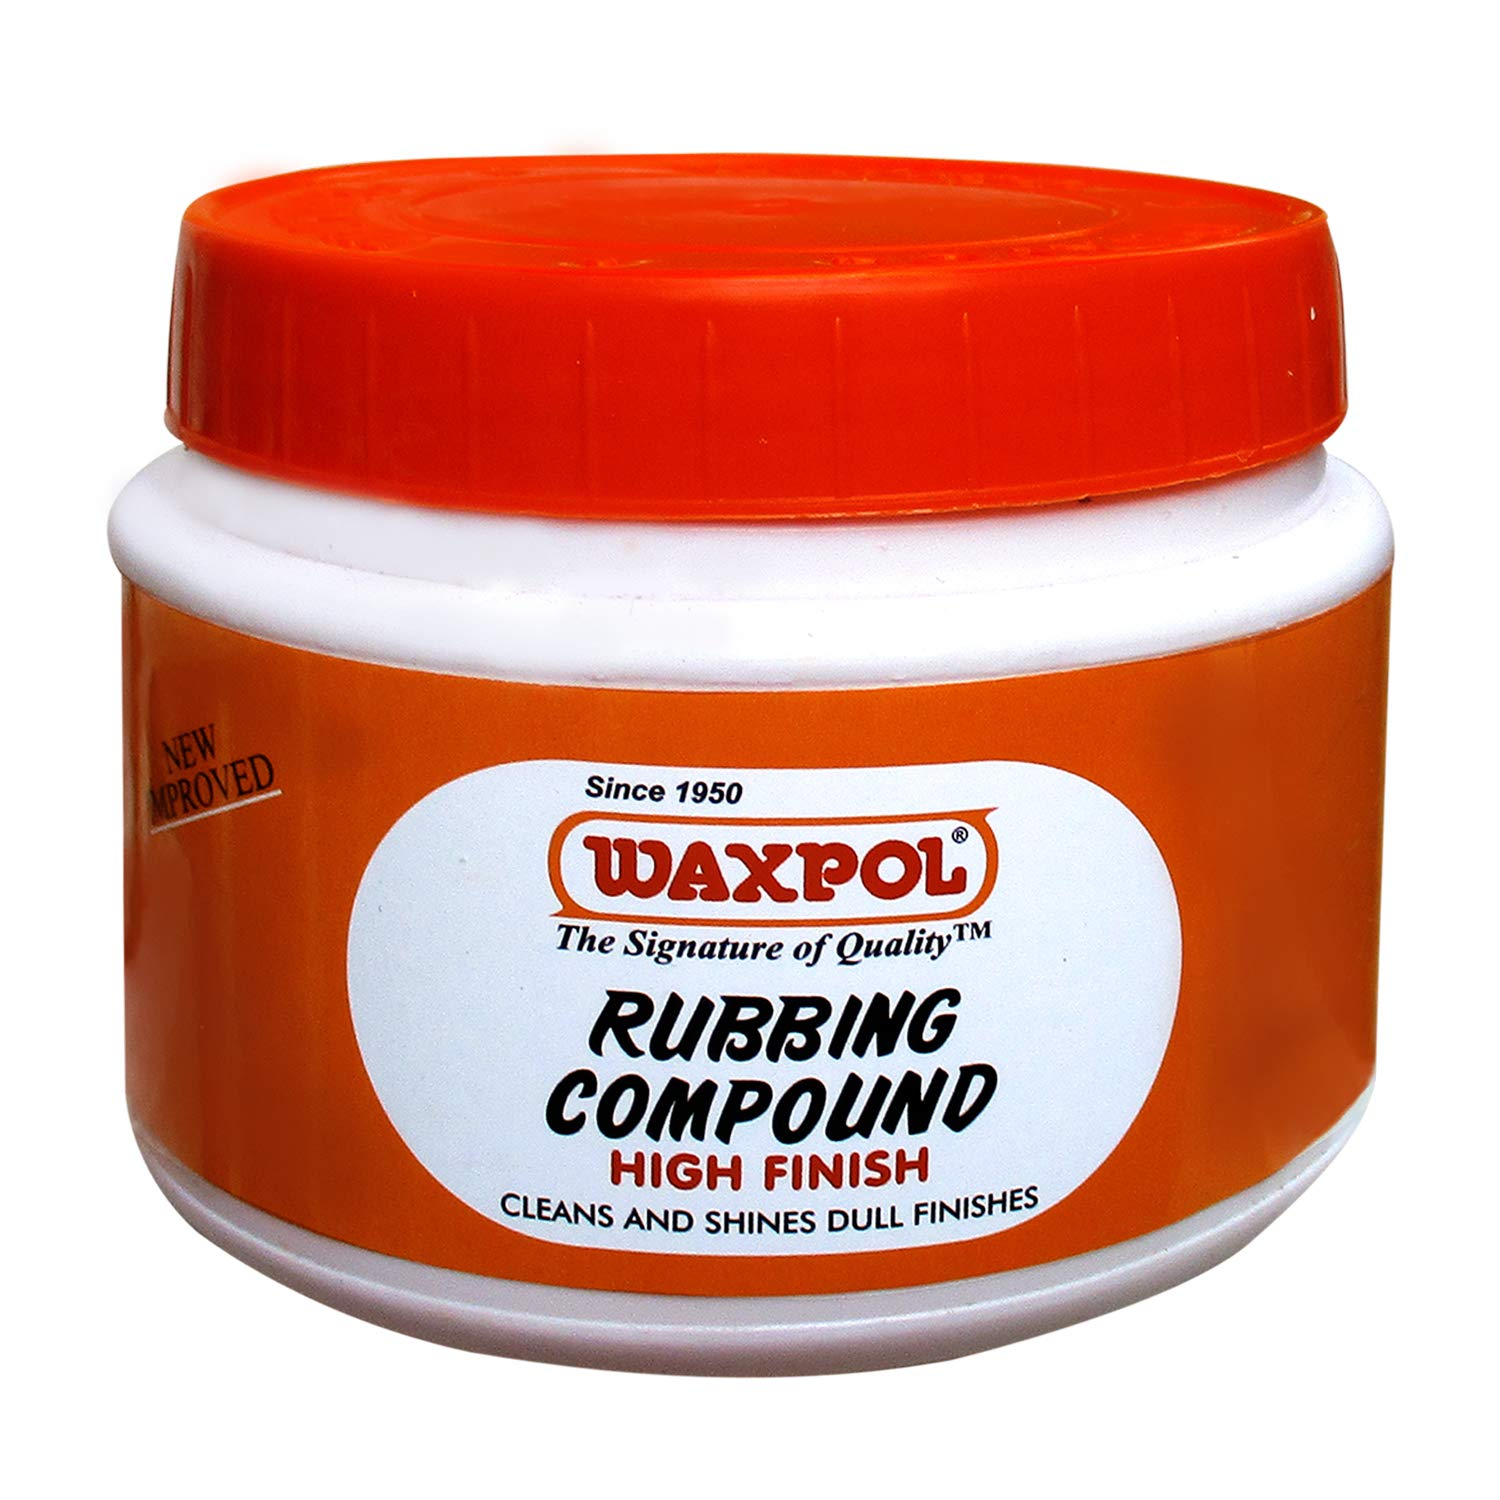 Waxpol Rubbing Compound (500 g) product image